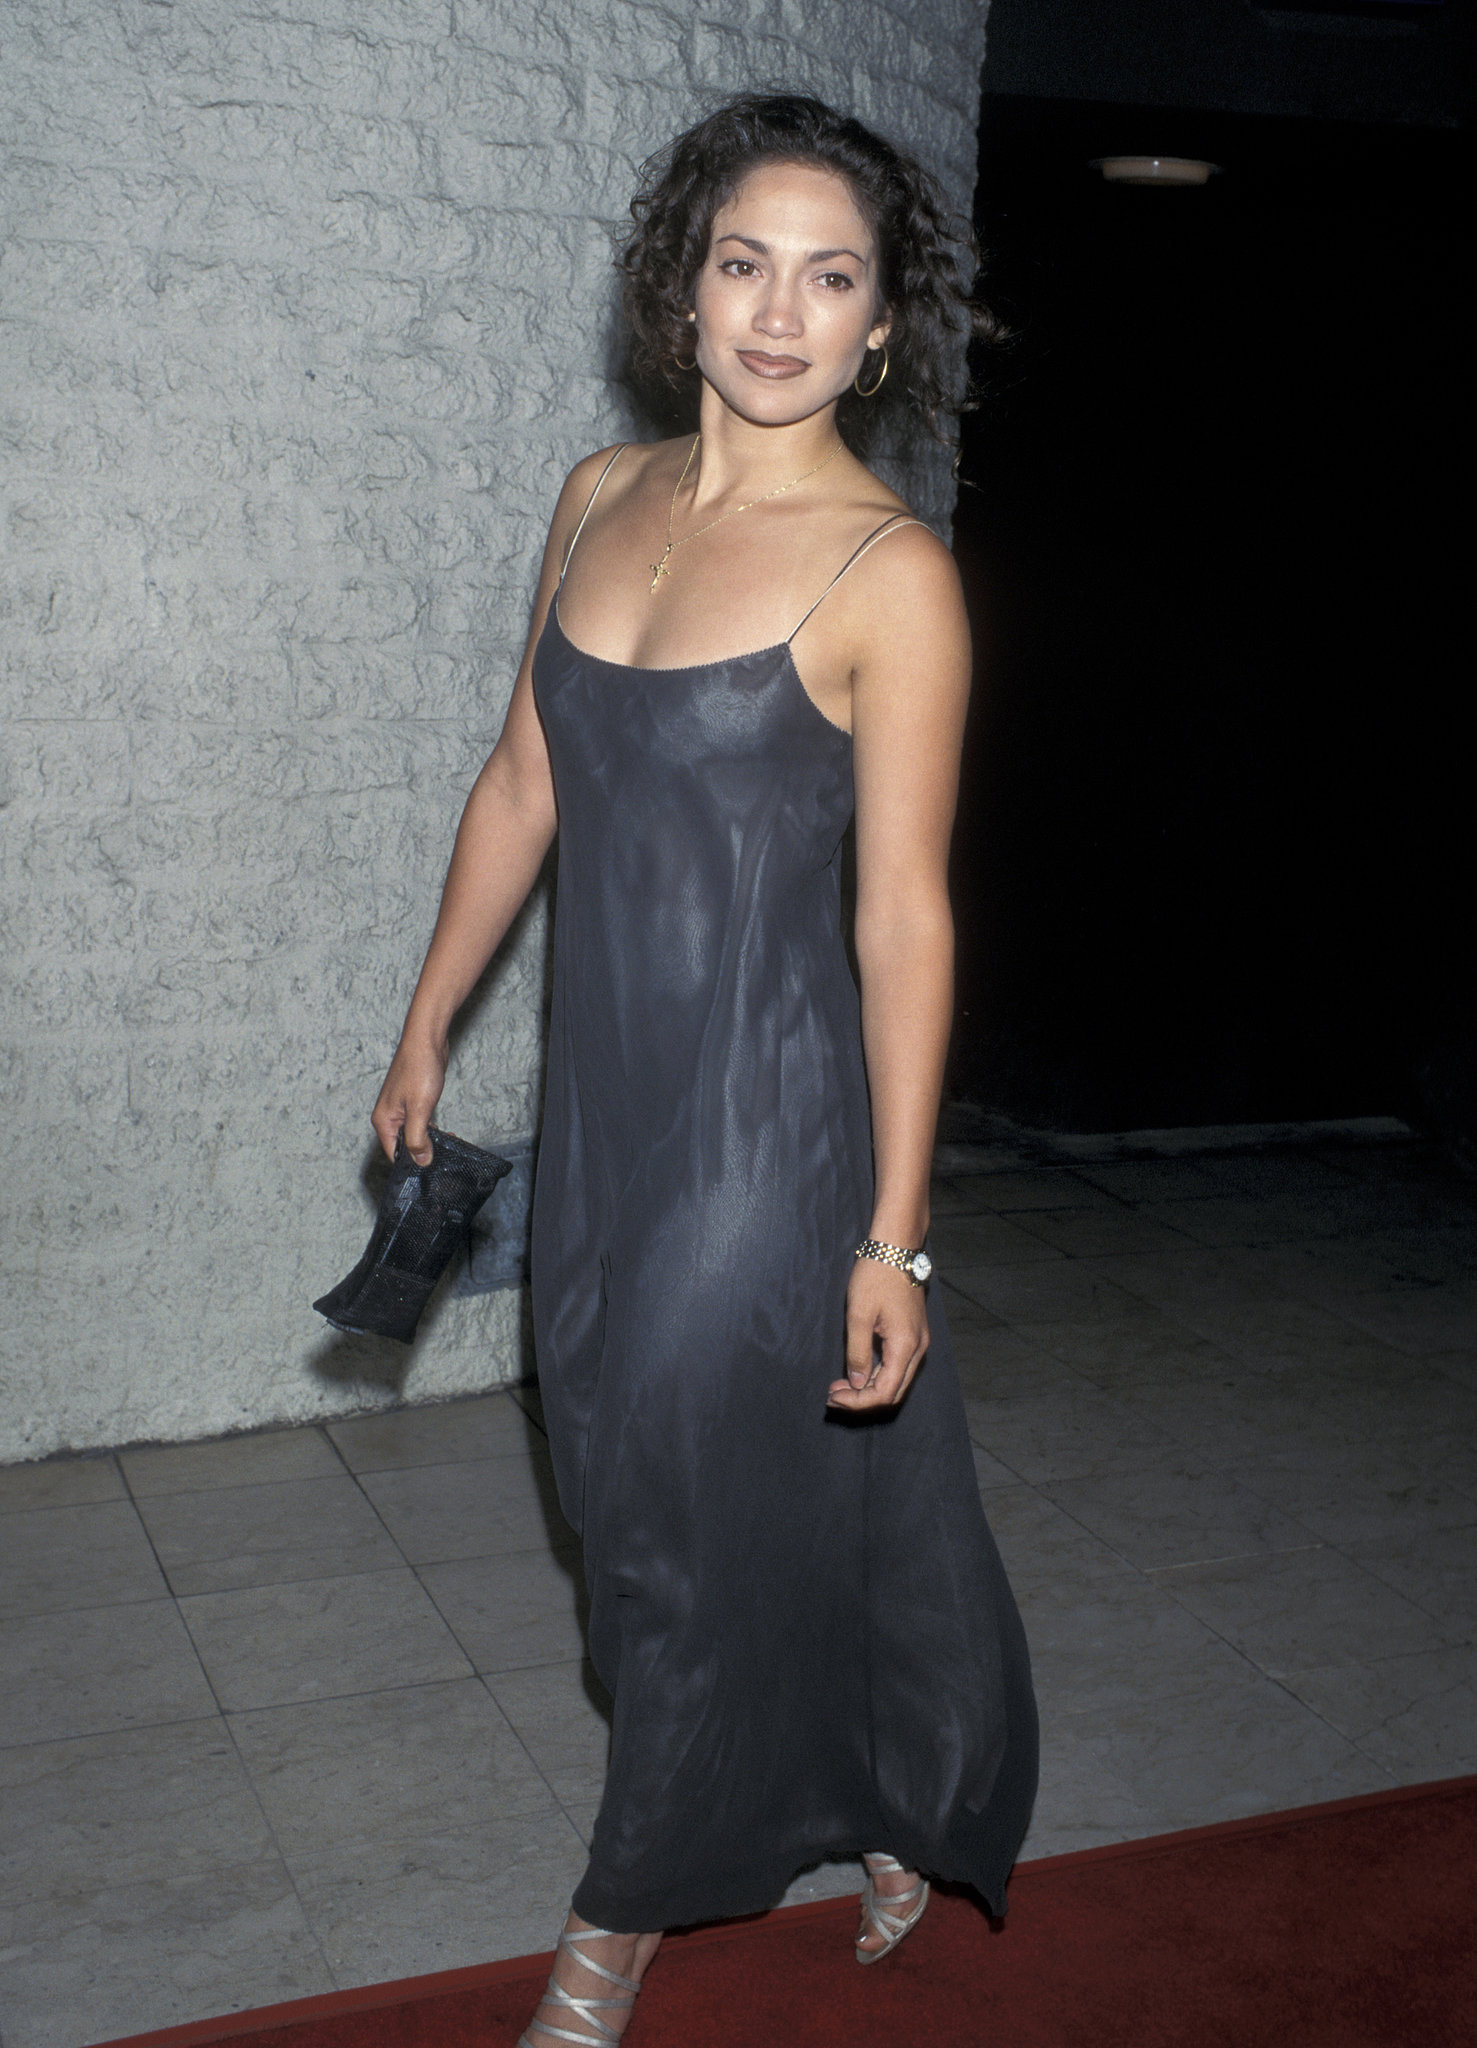 Curls and a breezy maxi for the Desperado premiere in J Lo's early days in '95.